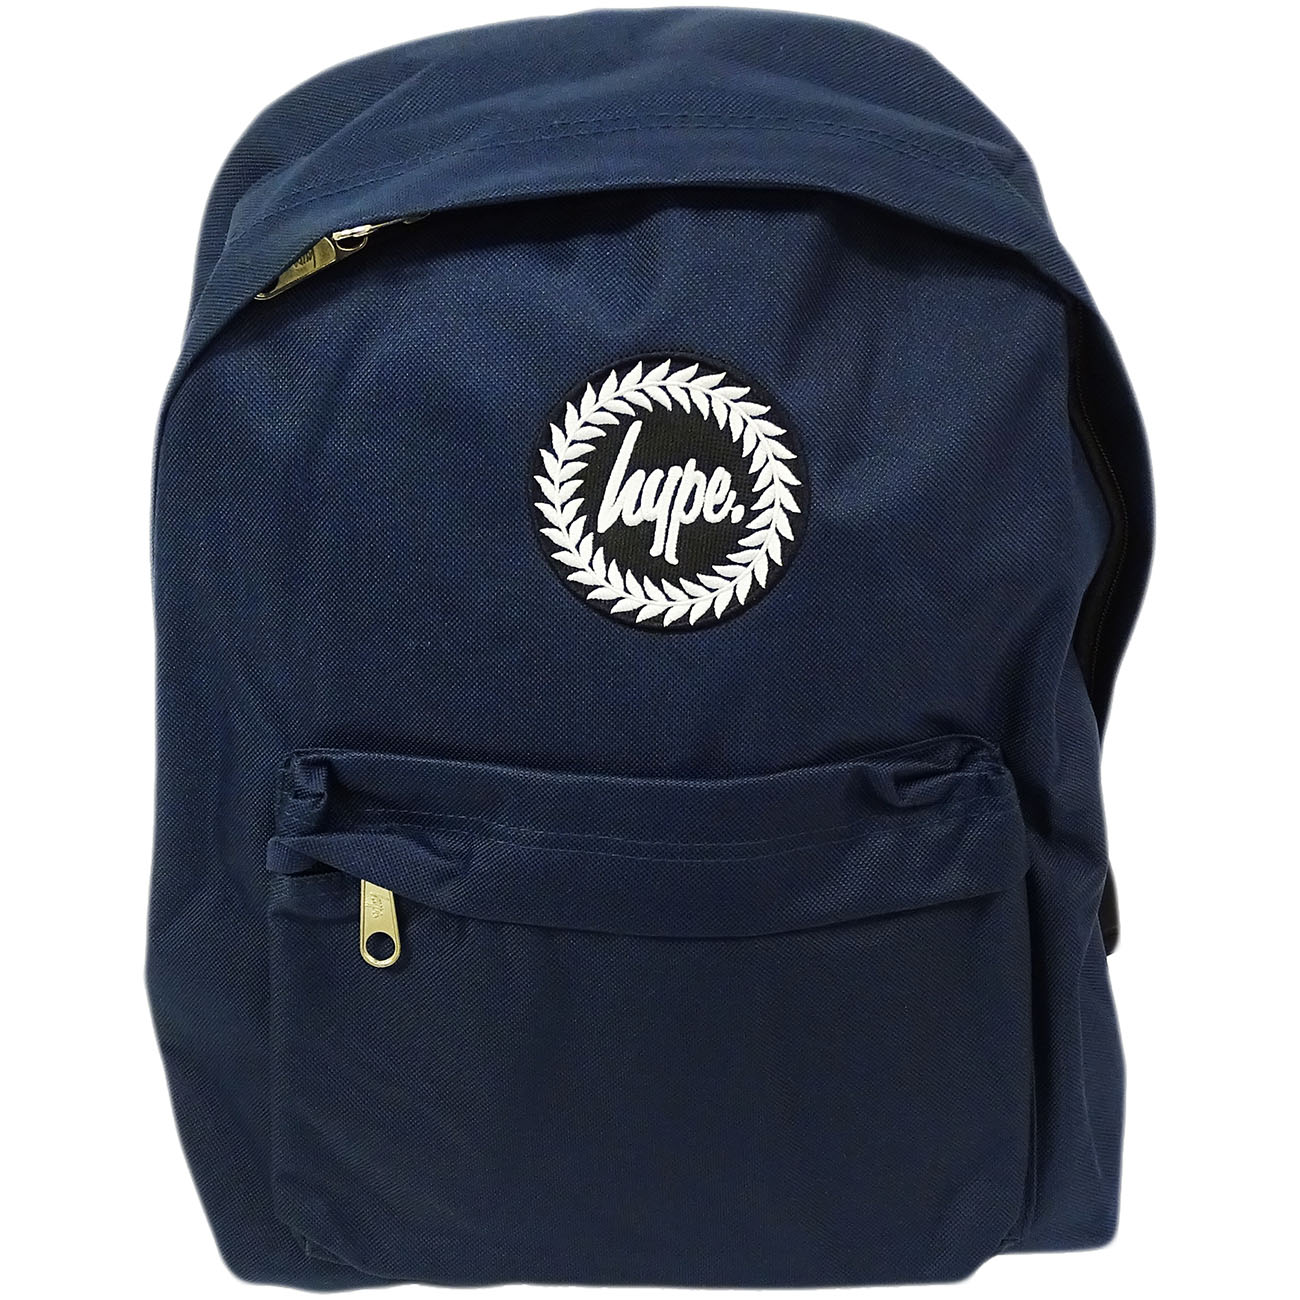 Hype Backpack Plain Navy Bag